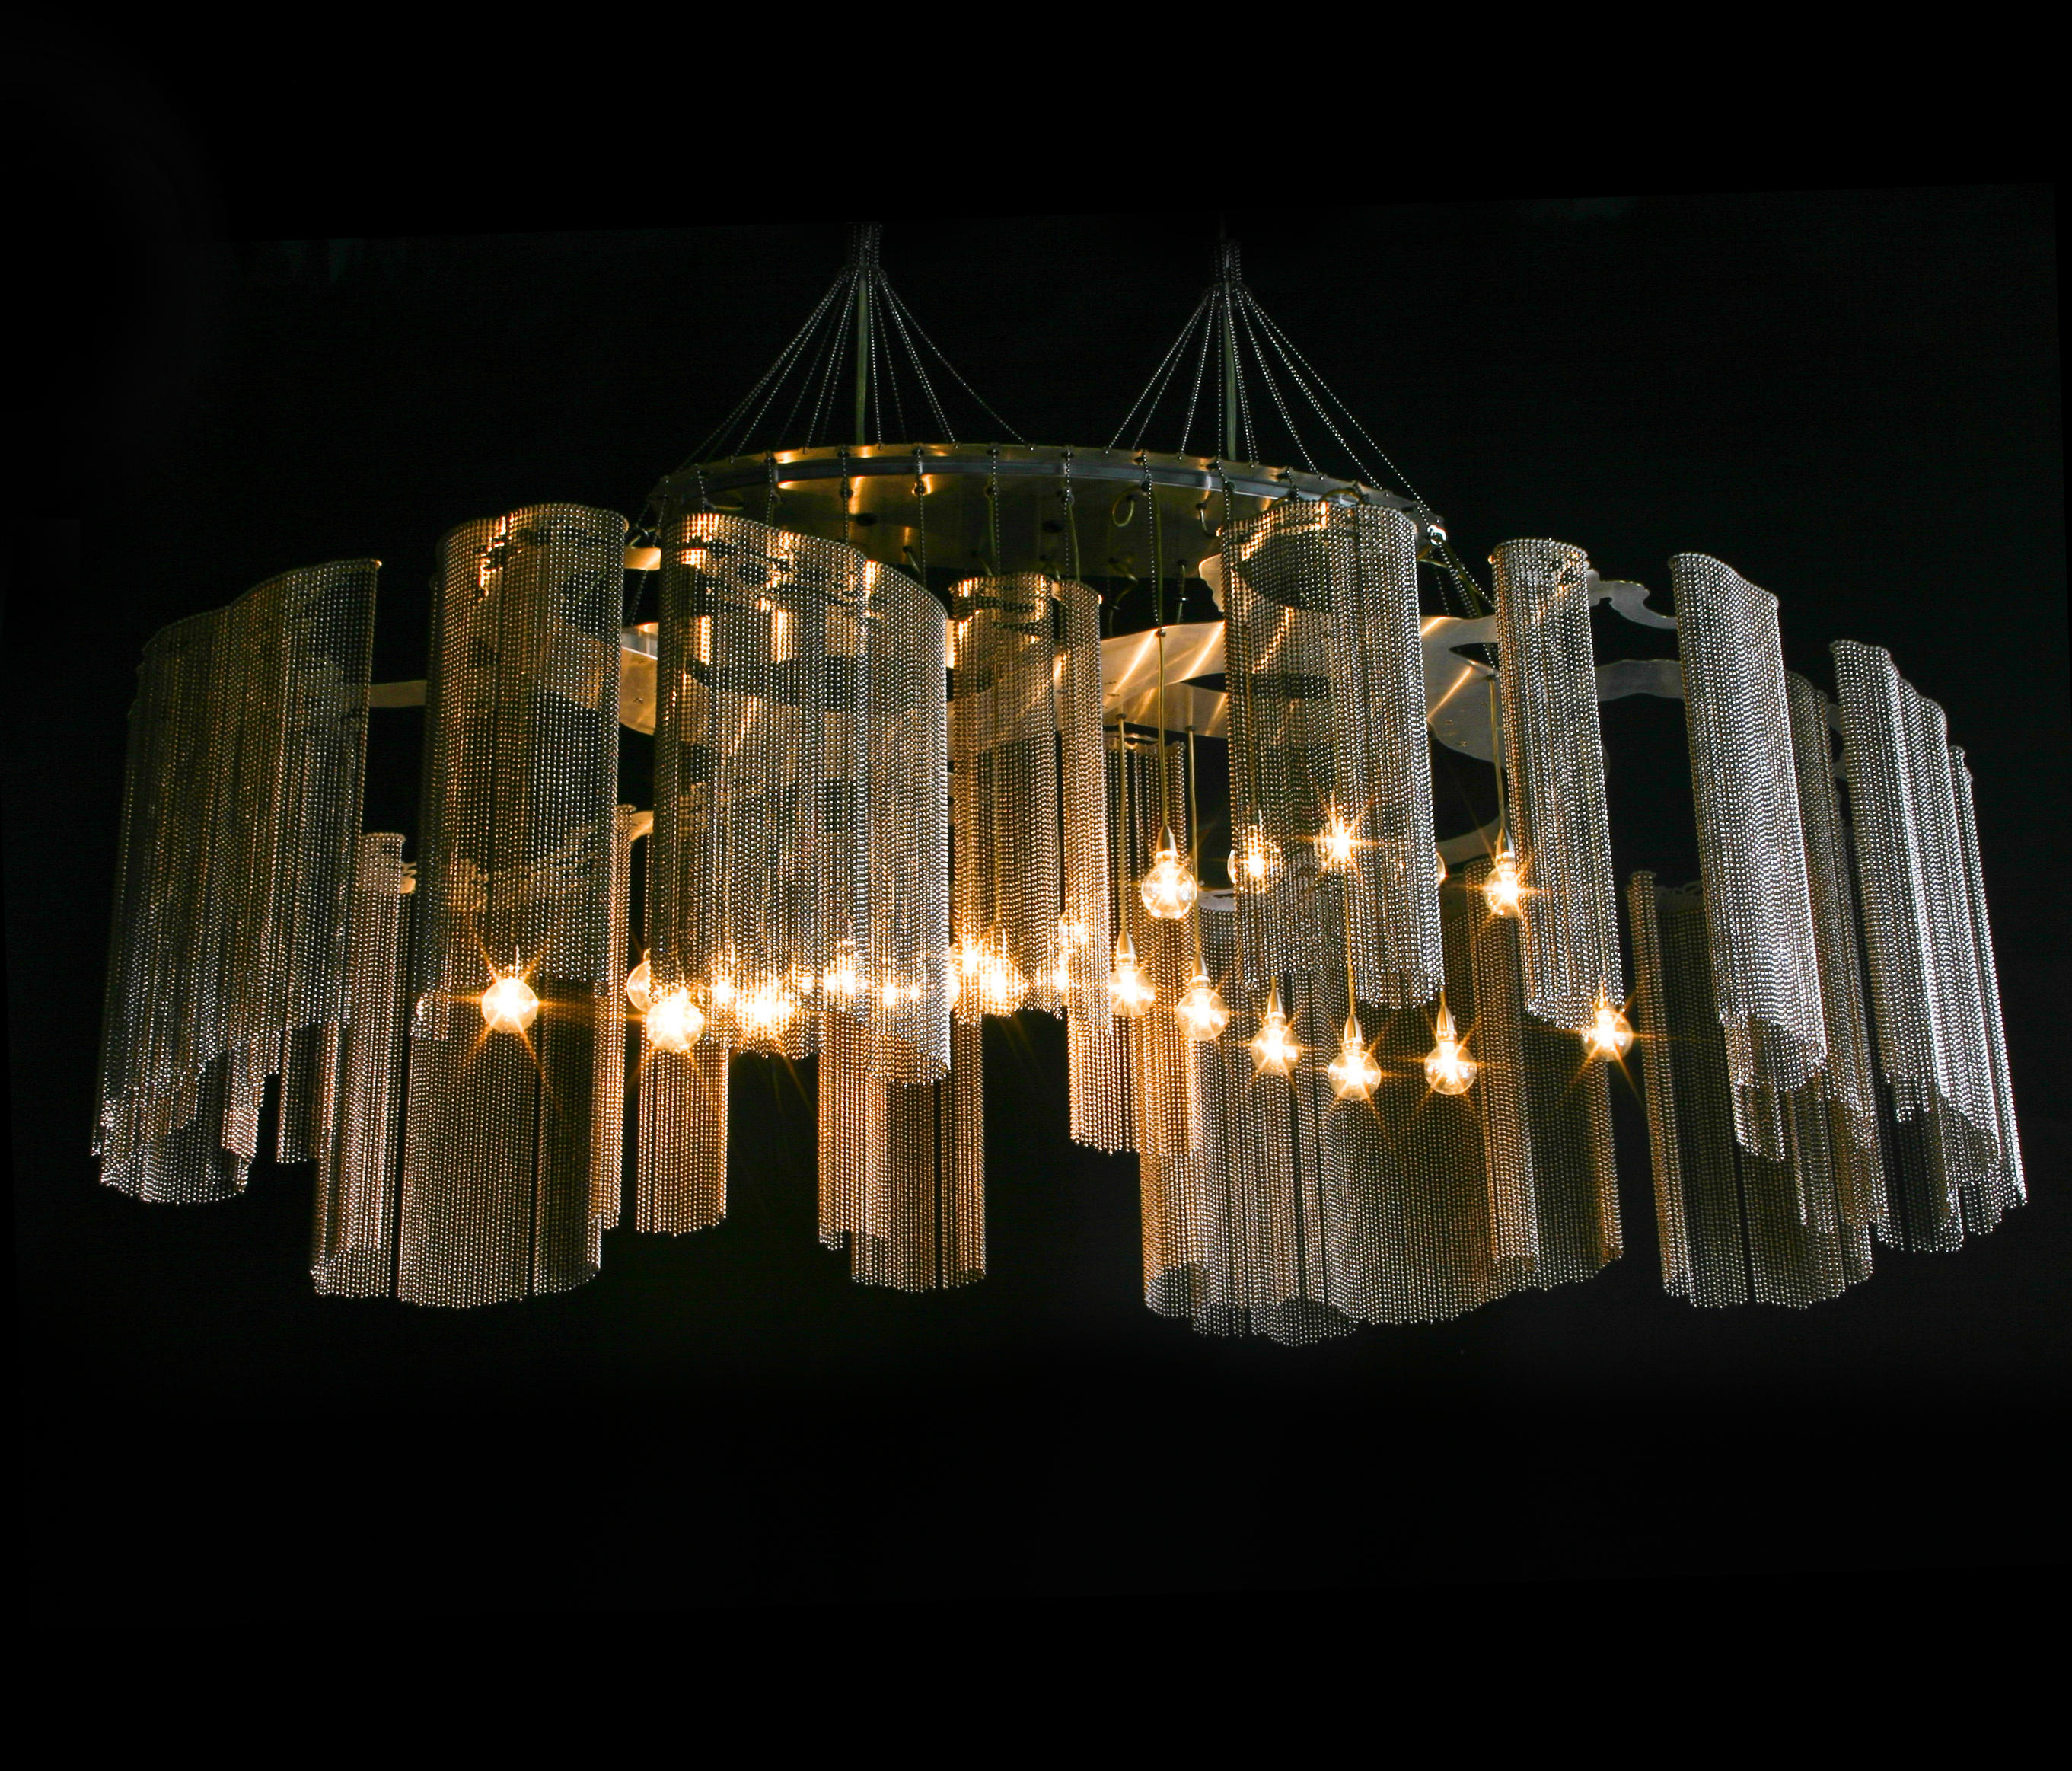 ELONGATED FARAWAY TREE 1600 Lighting Objects From Willowlamp Architonic